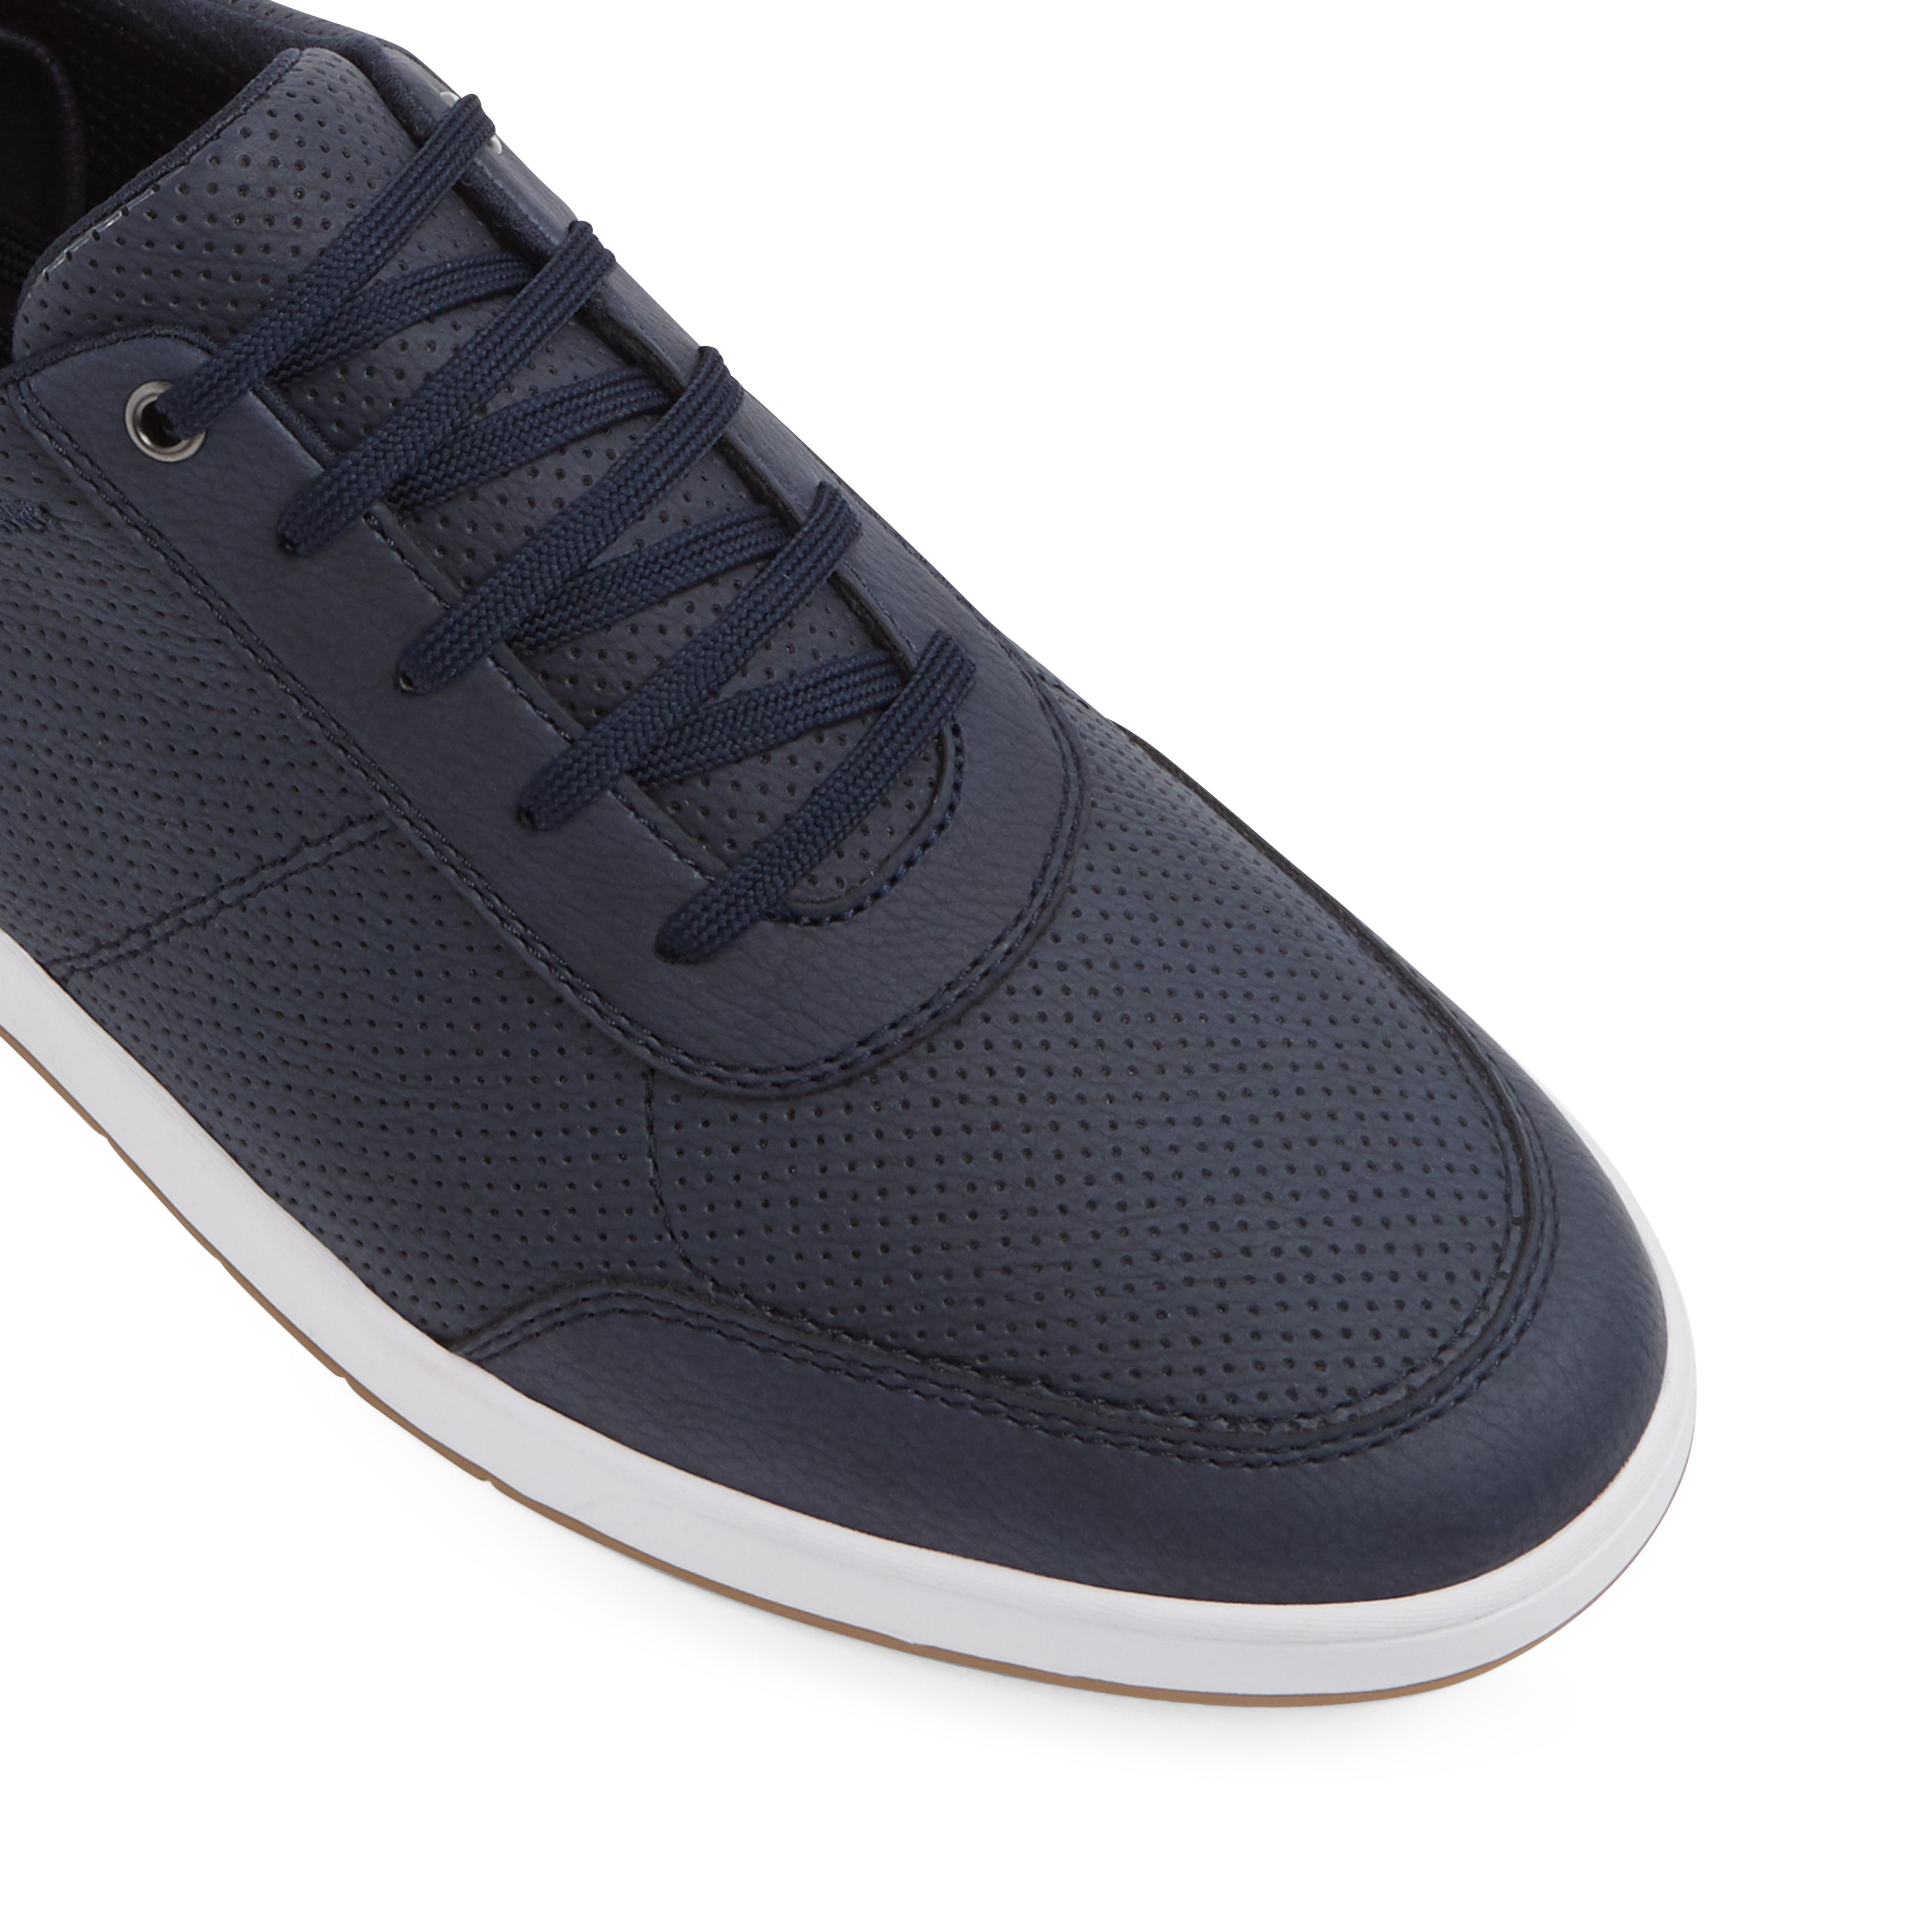 a43e5279bbe Aldo Dobyn Trainers - House Of Fraser